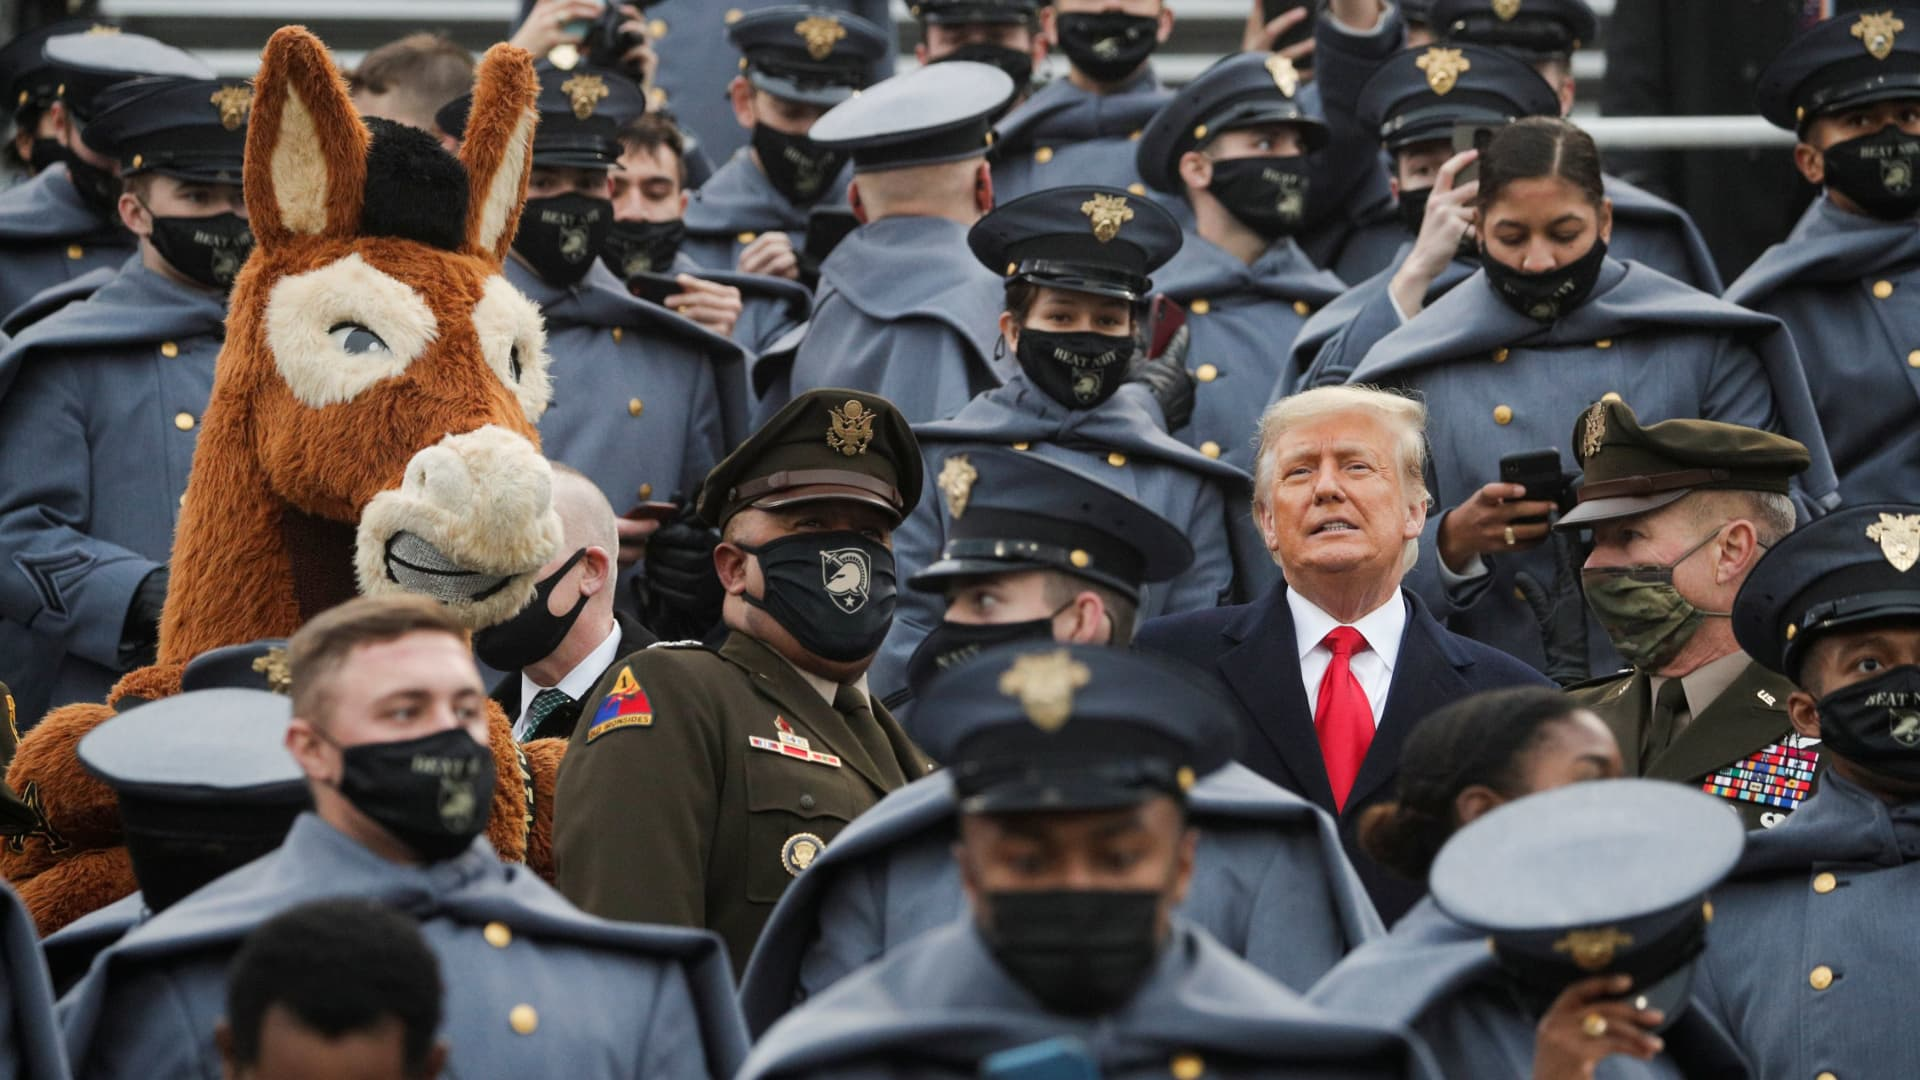 U.S. President Trump stands among U.S. Army cadets as he attends the annual Army-Navy collegiate football game at Michie Stadium, in West Point, New York, U.S., December 12, 2020.